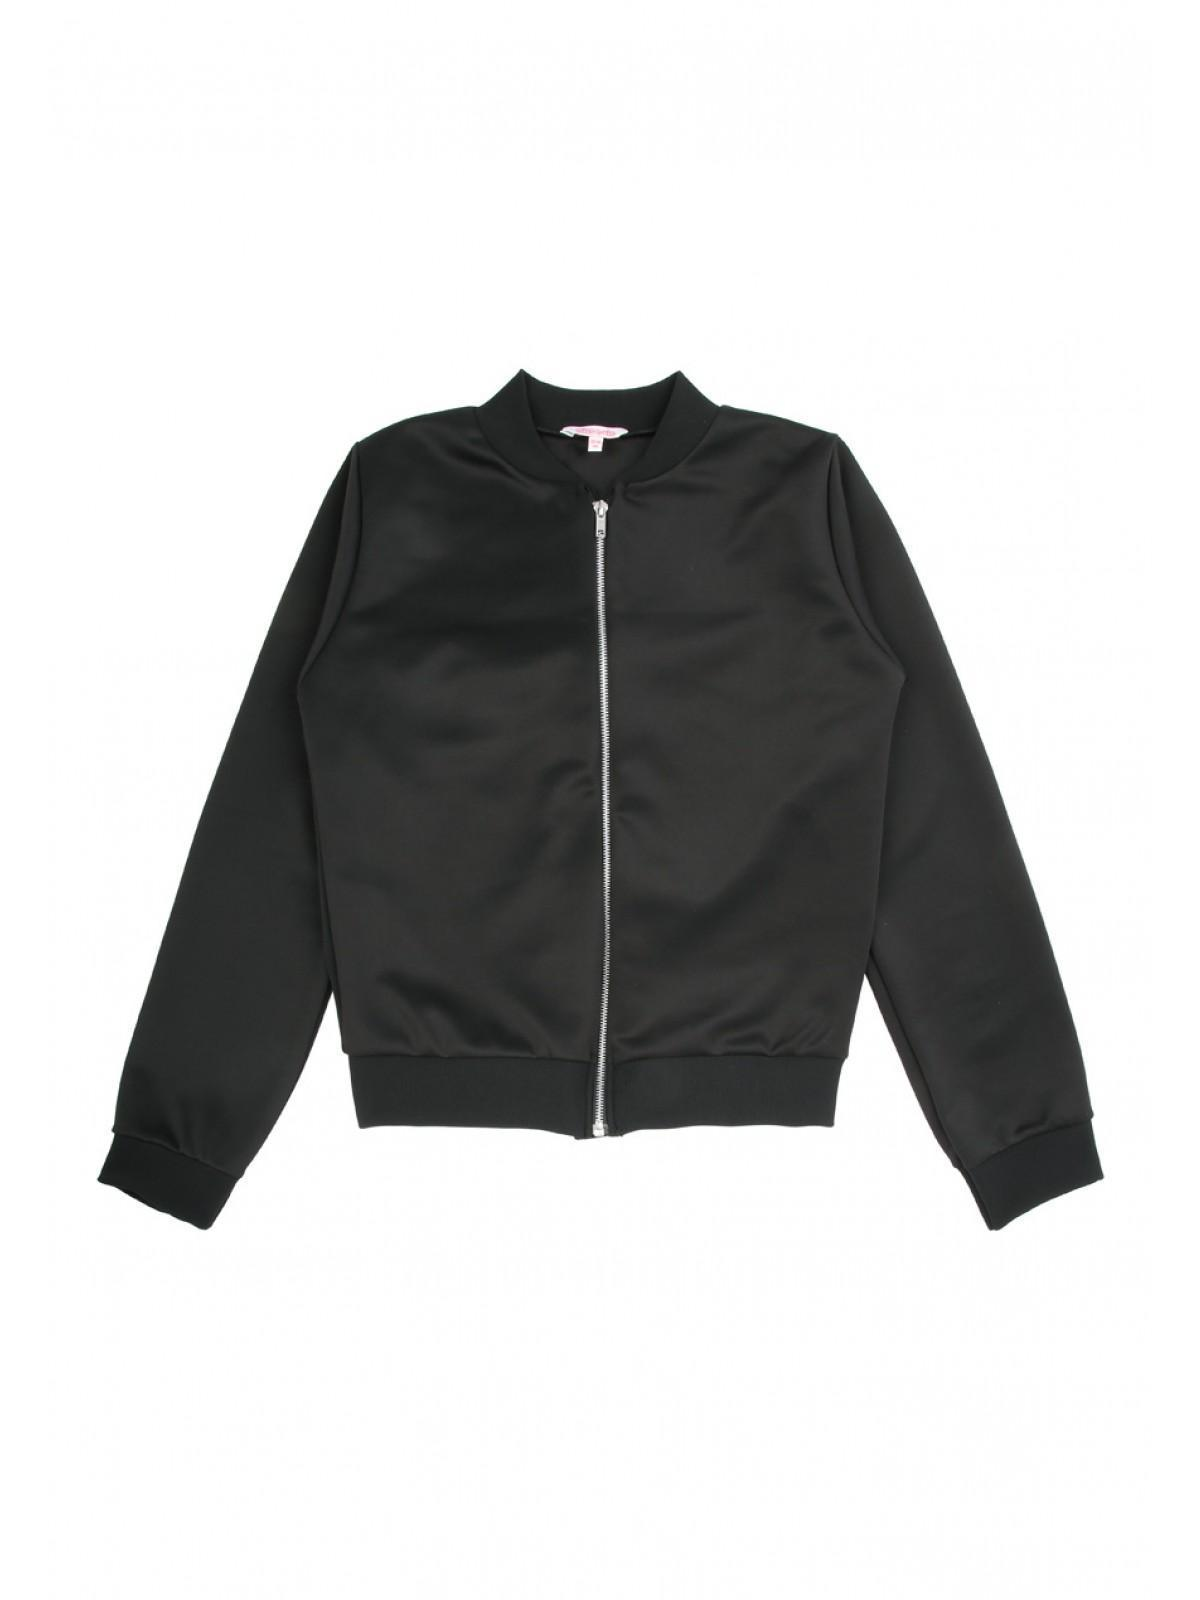 Girls Older Girls Black Bomber Jersey Jacket | Peacocks